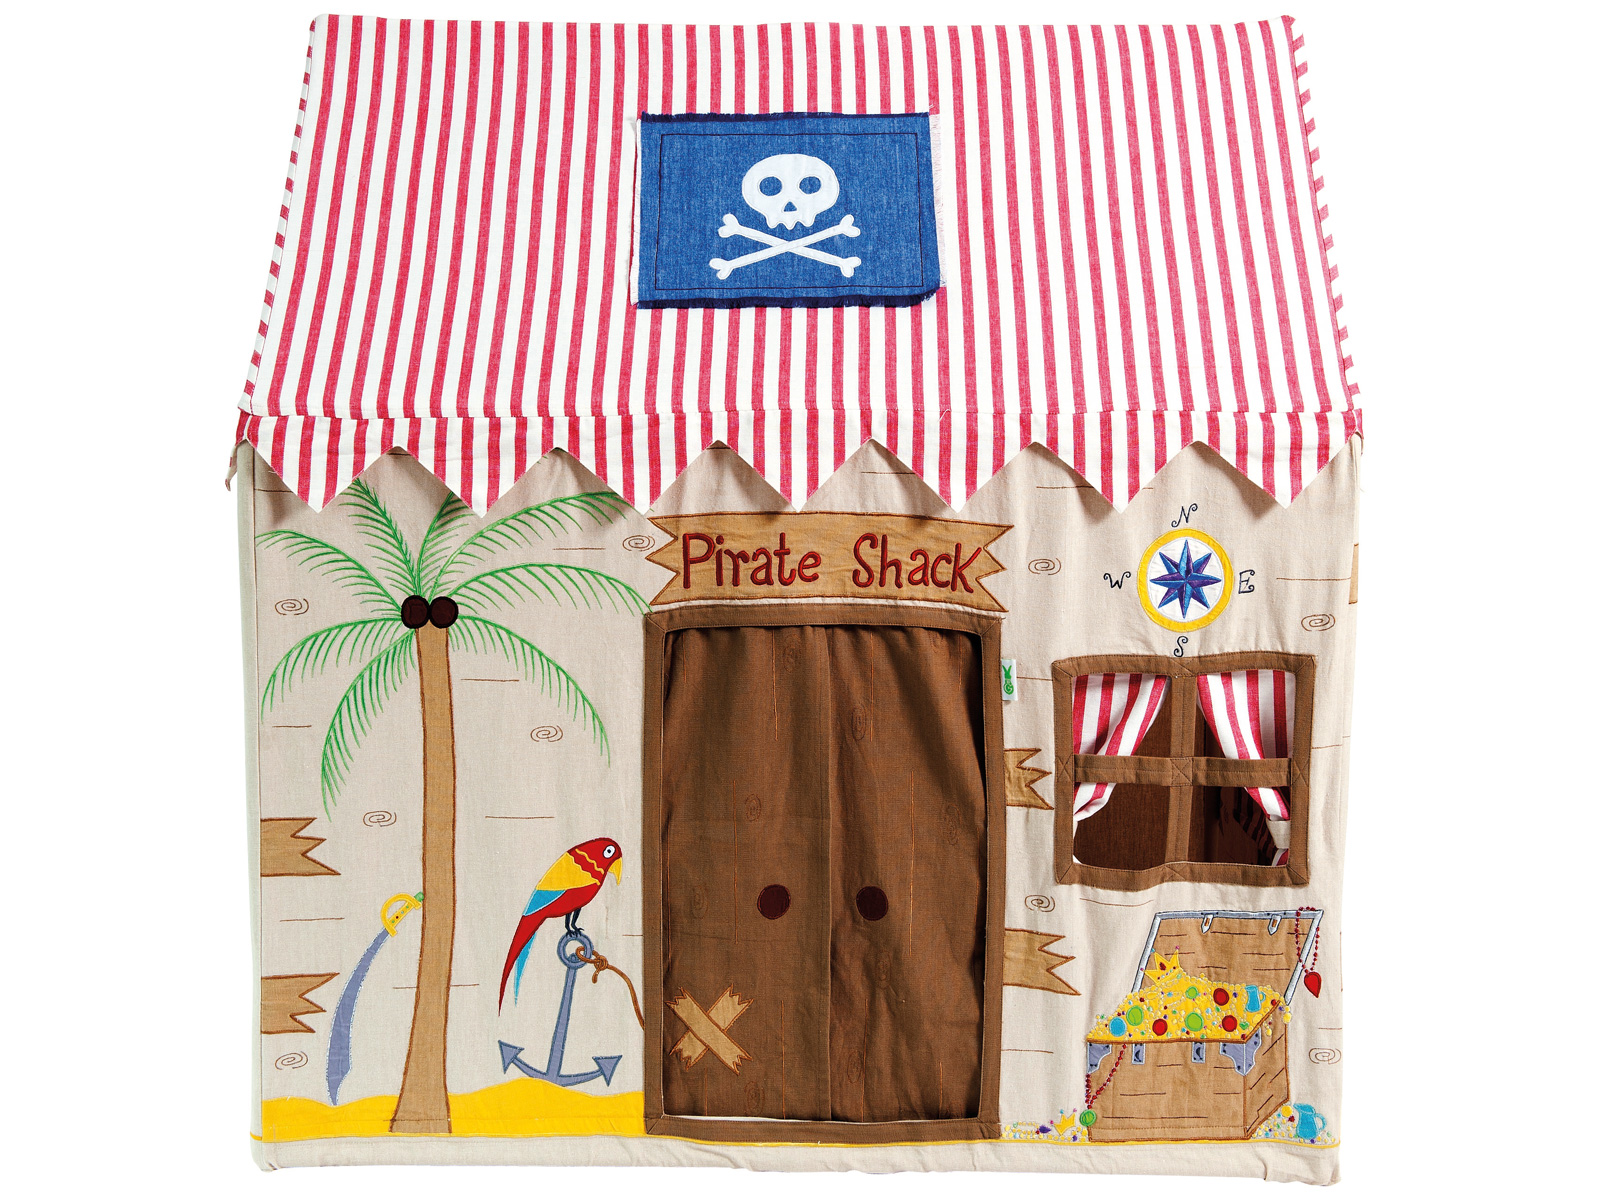 Win Green Handmade Cotton Pirate Shack Playhouse - Playhouse of Dreams  - 1